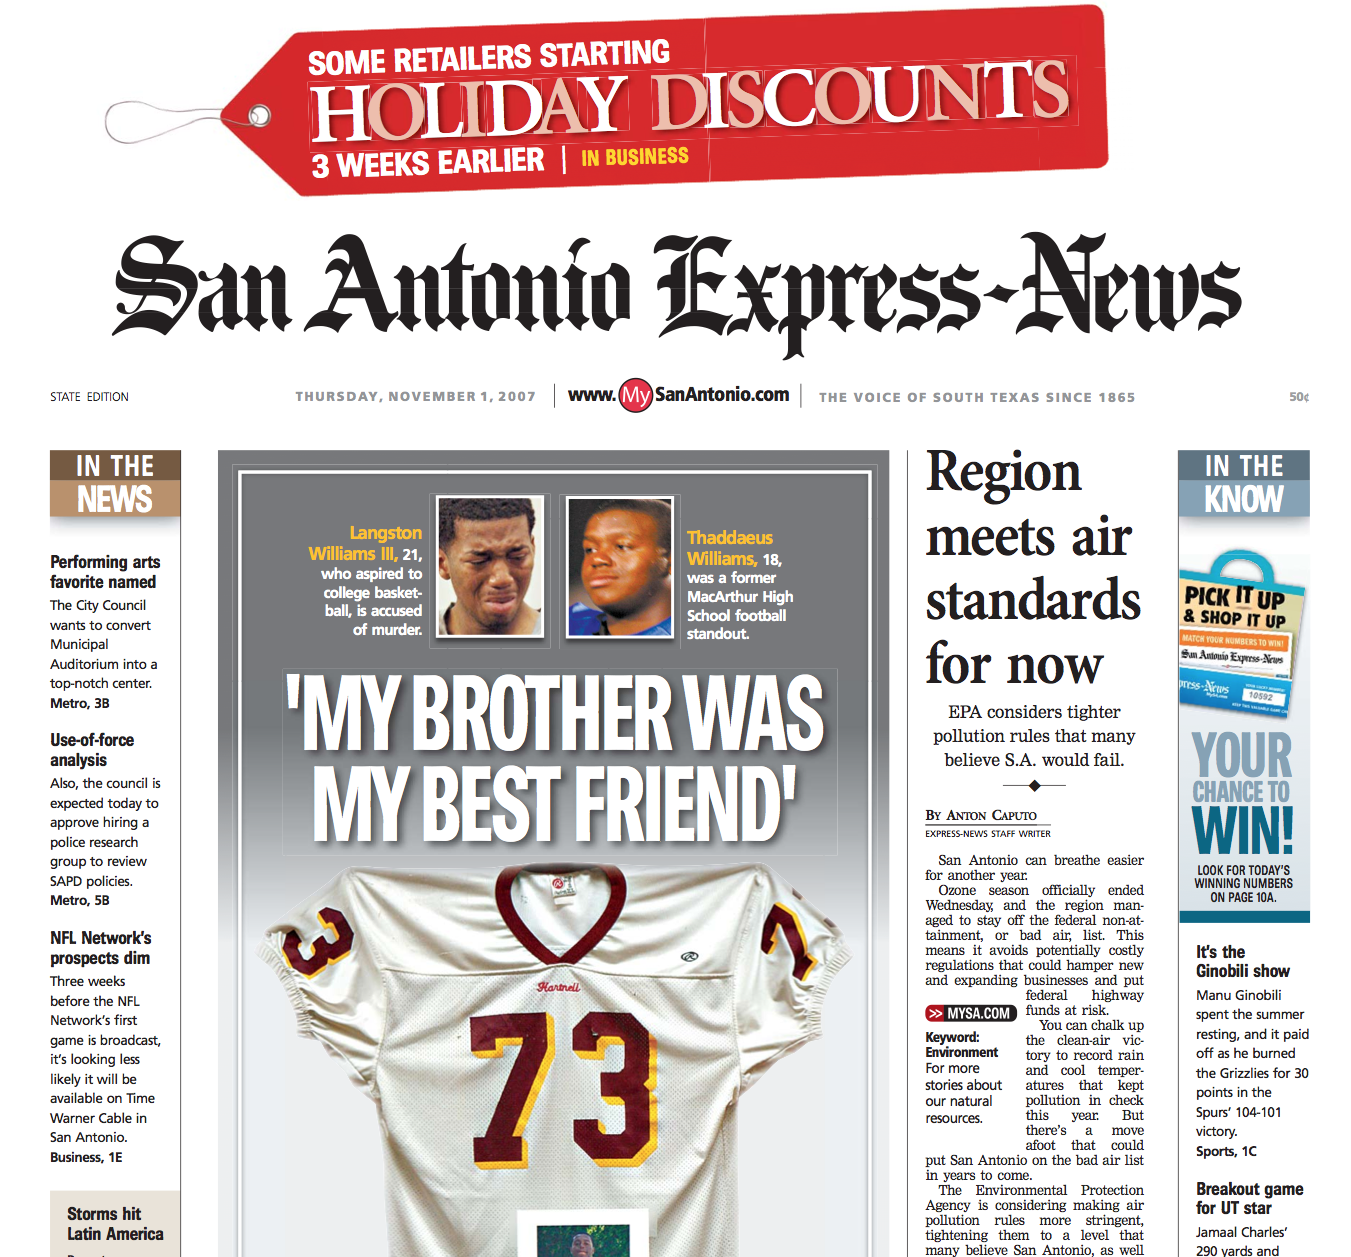 San Antonio Express News Holiday Discounts Murder Front Page created and designed by JA Creative Group